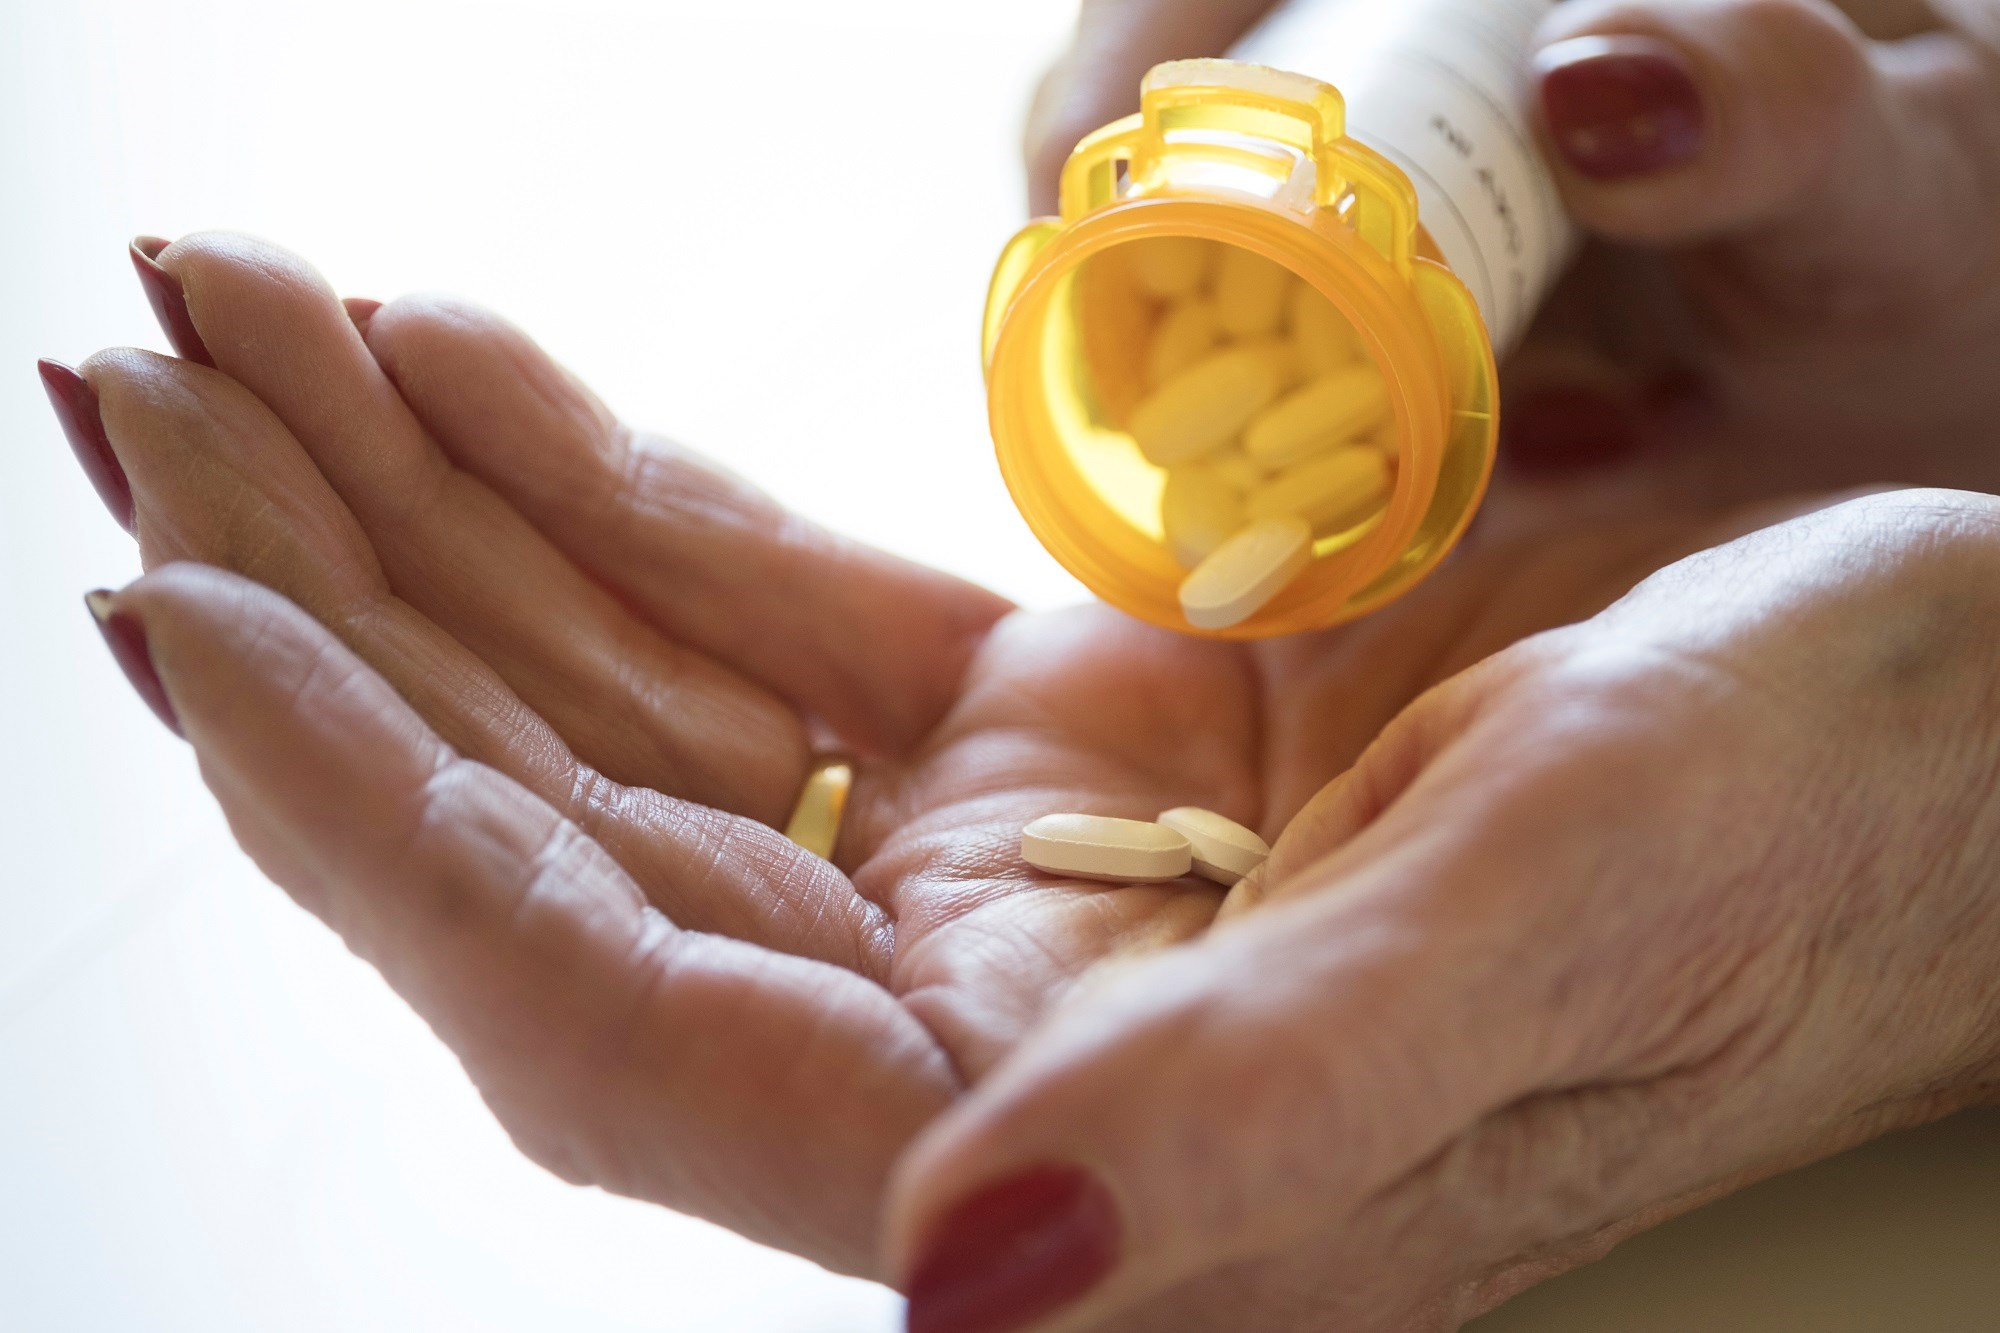 Many Older Adults Transition to Long-term Benzodiazepine Use